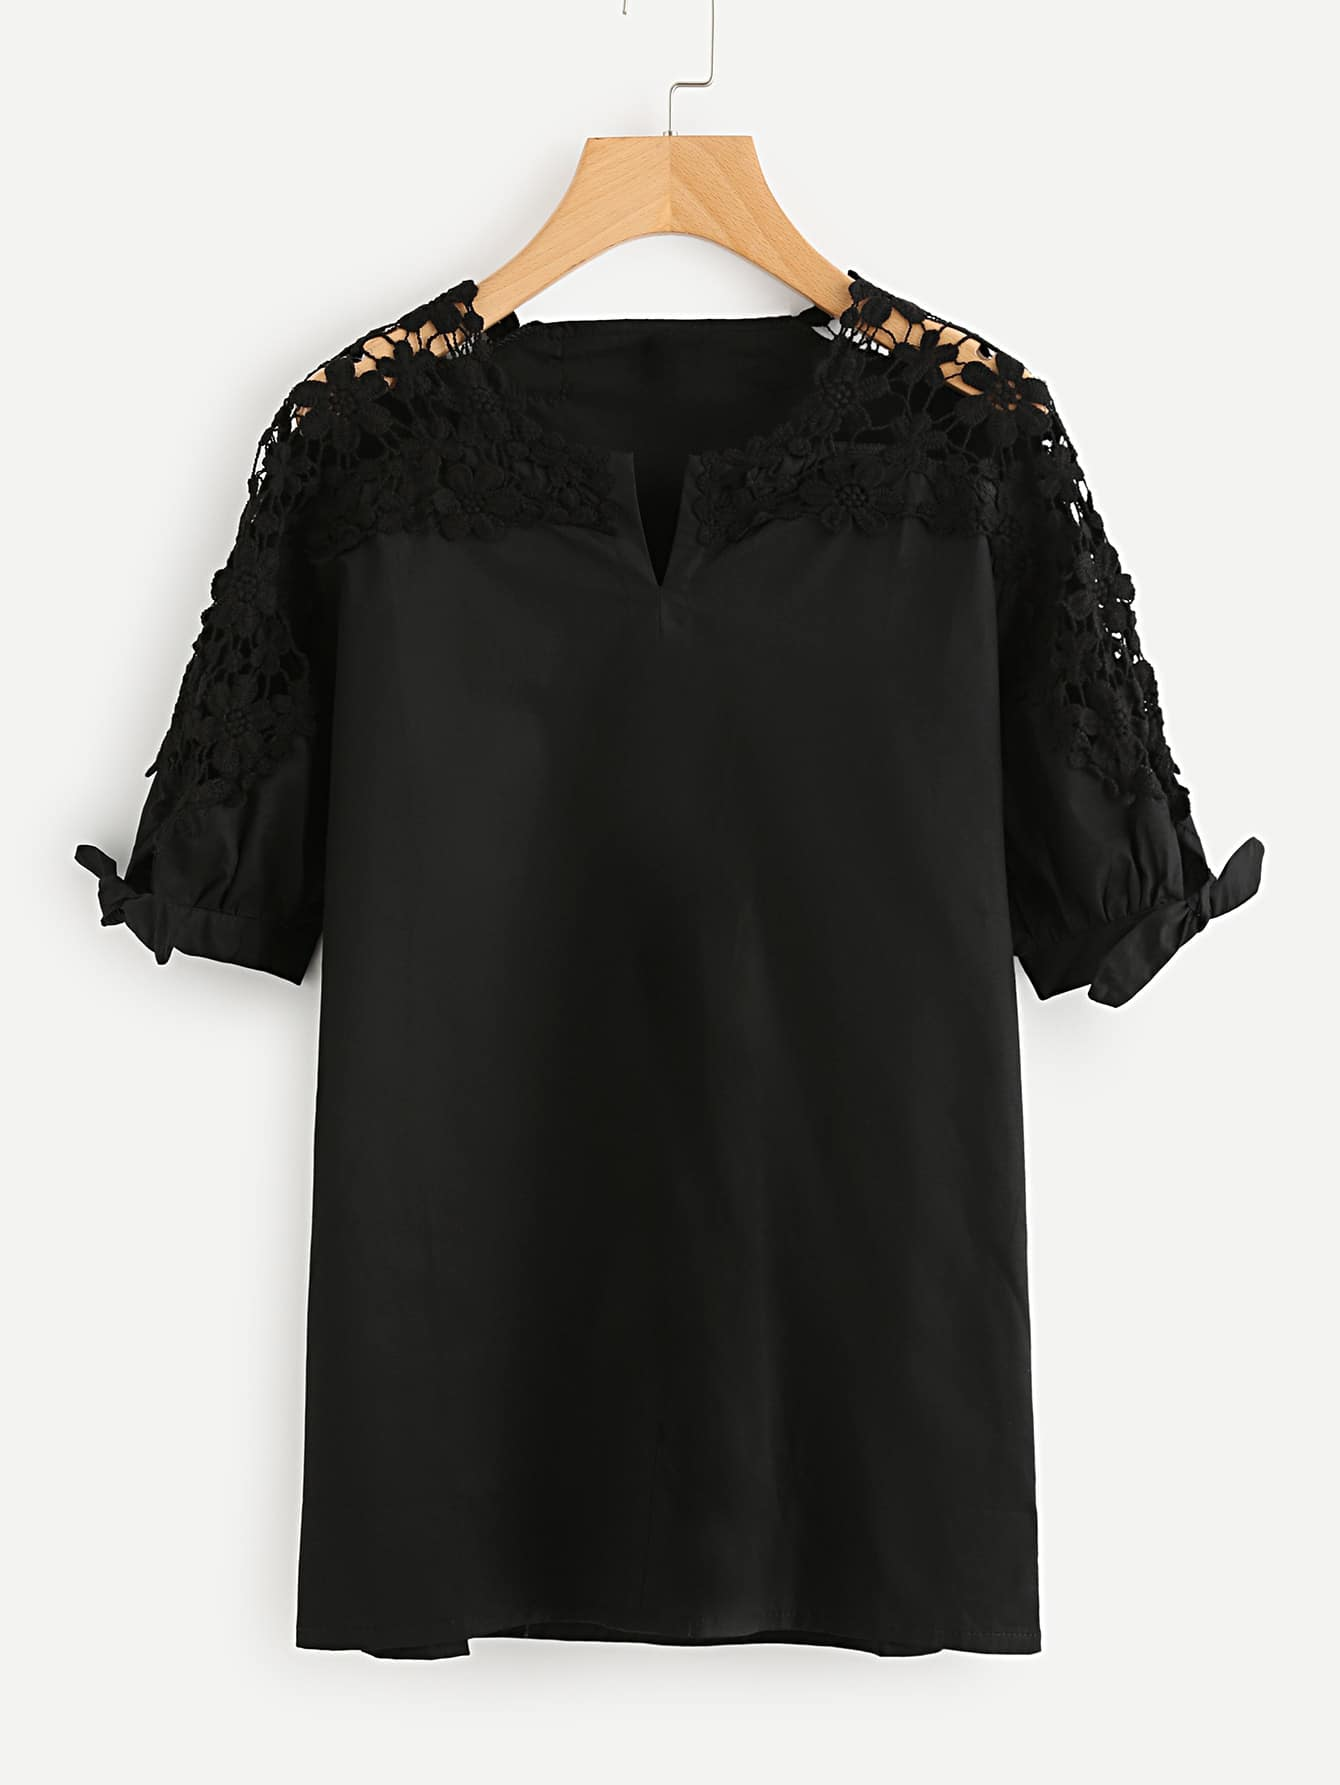 Hollow Out Crochet Panel V Cut Tie Cuff Blouse blouse170908301